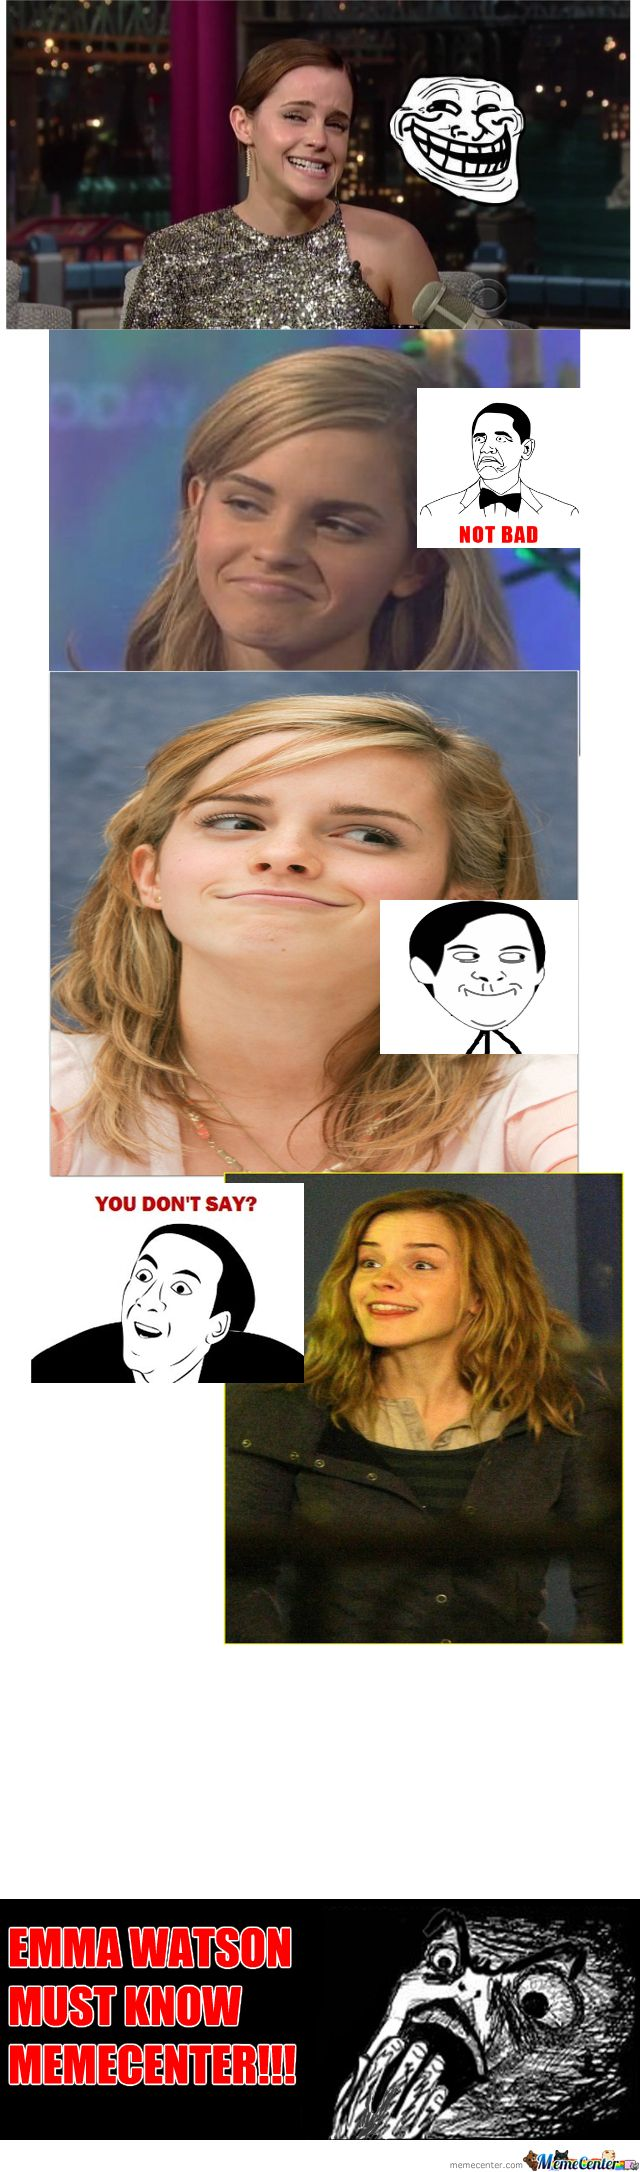 Hhahah she's awesome!